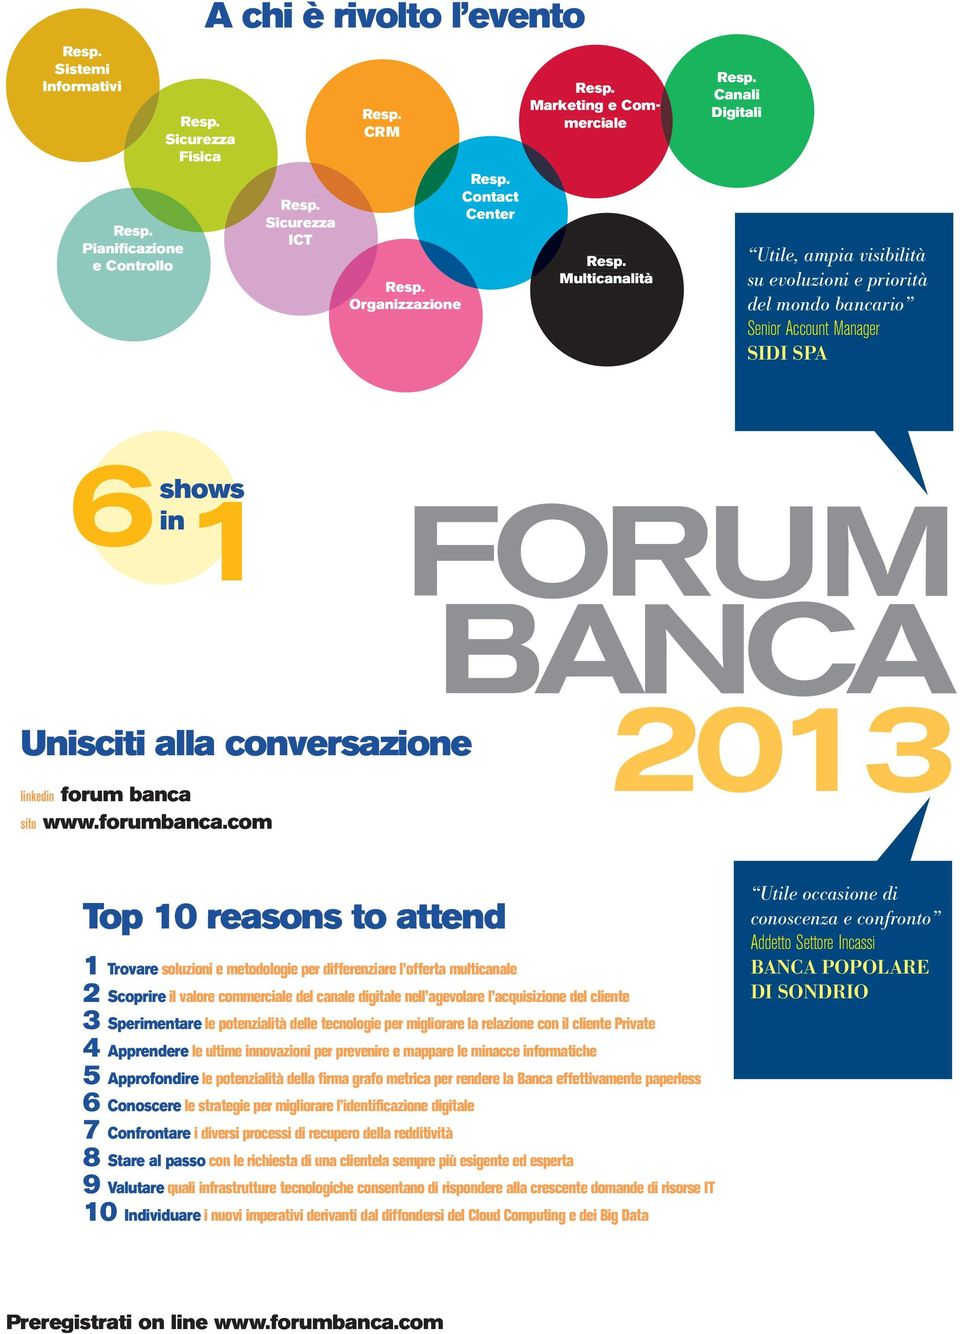 com BANCA 2013 Top 10 reasons to attend 1 Trovare soluzioni e metodologie per differenziare l offerta multicanale 2 Scoprire il valore commerciale del canale digitale nell agevolare l acquisizione